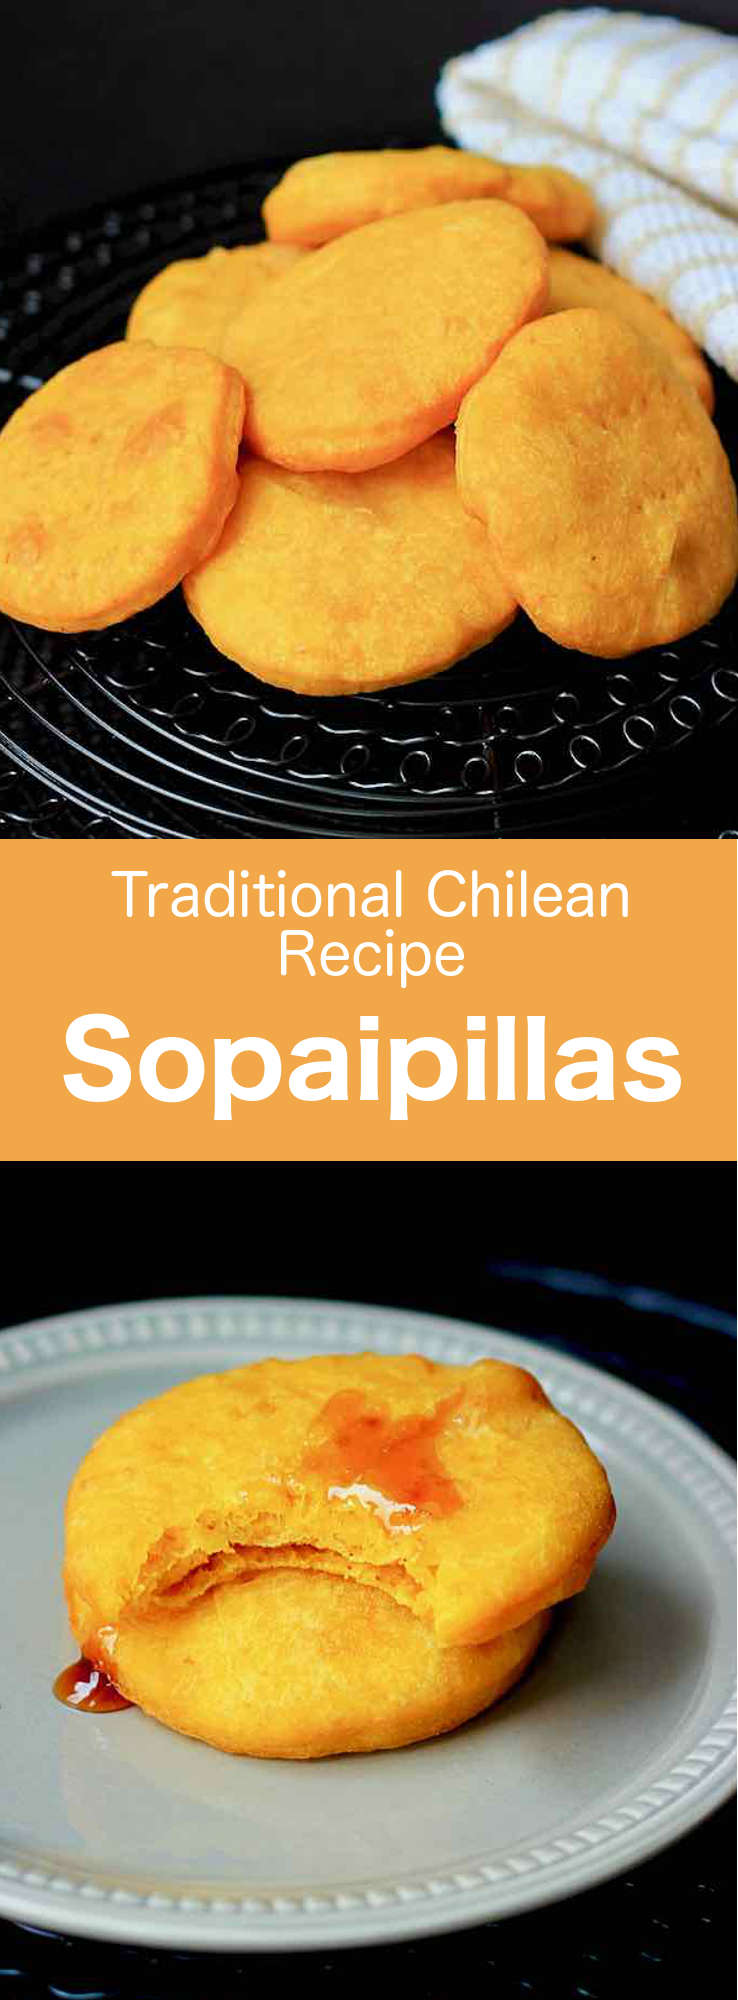 Sopaipillas are pumpkin-based flour tortillas fried in oil or butter that are typical in Chile, and have other variants throughout Latin America. #Chile #ChileanCuisine #ChileanRecipe #ChileanFood #WorldCuisine #196flavors